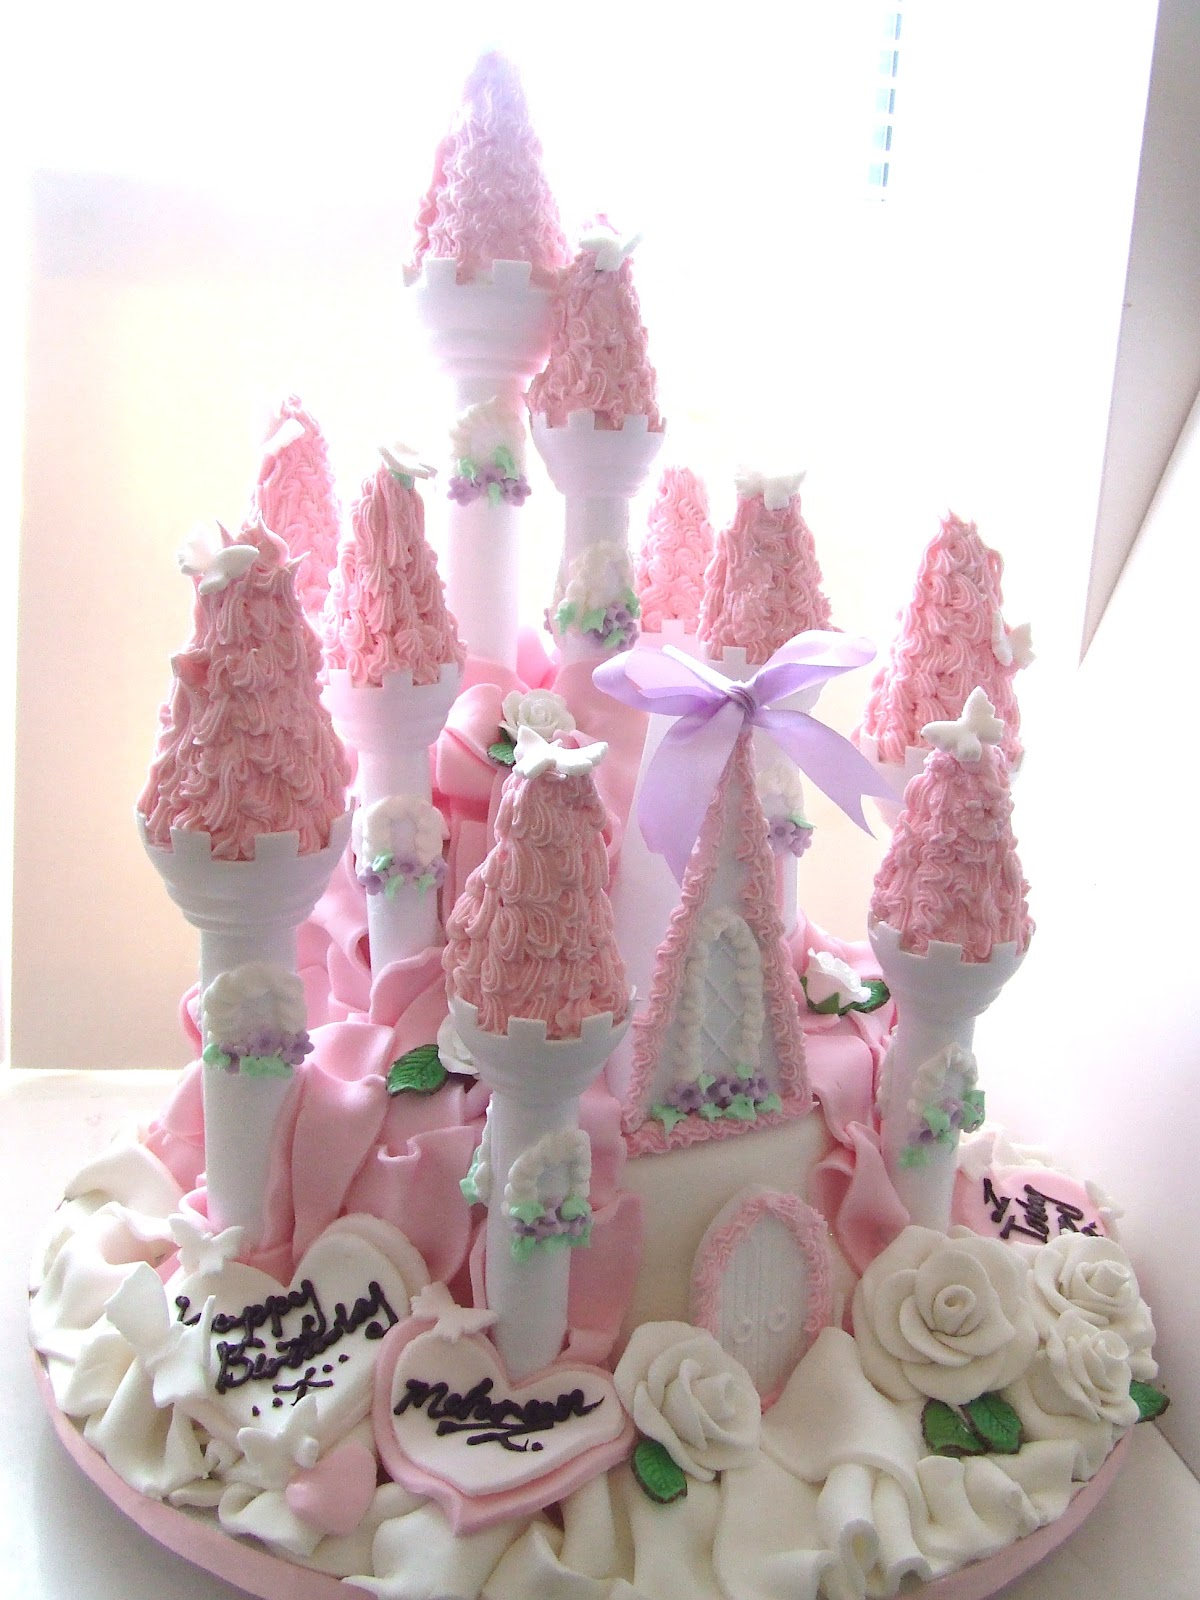 Iced Out Company Cakes!: The Princess Castle Cake!